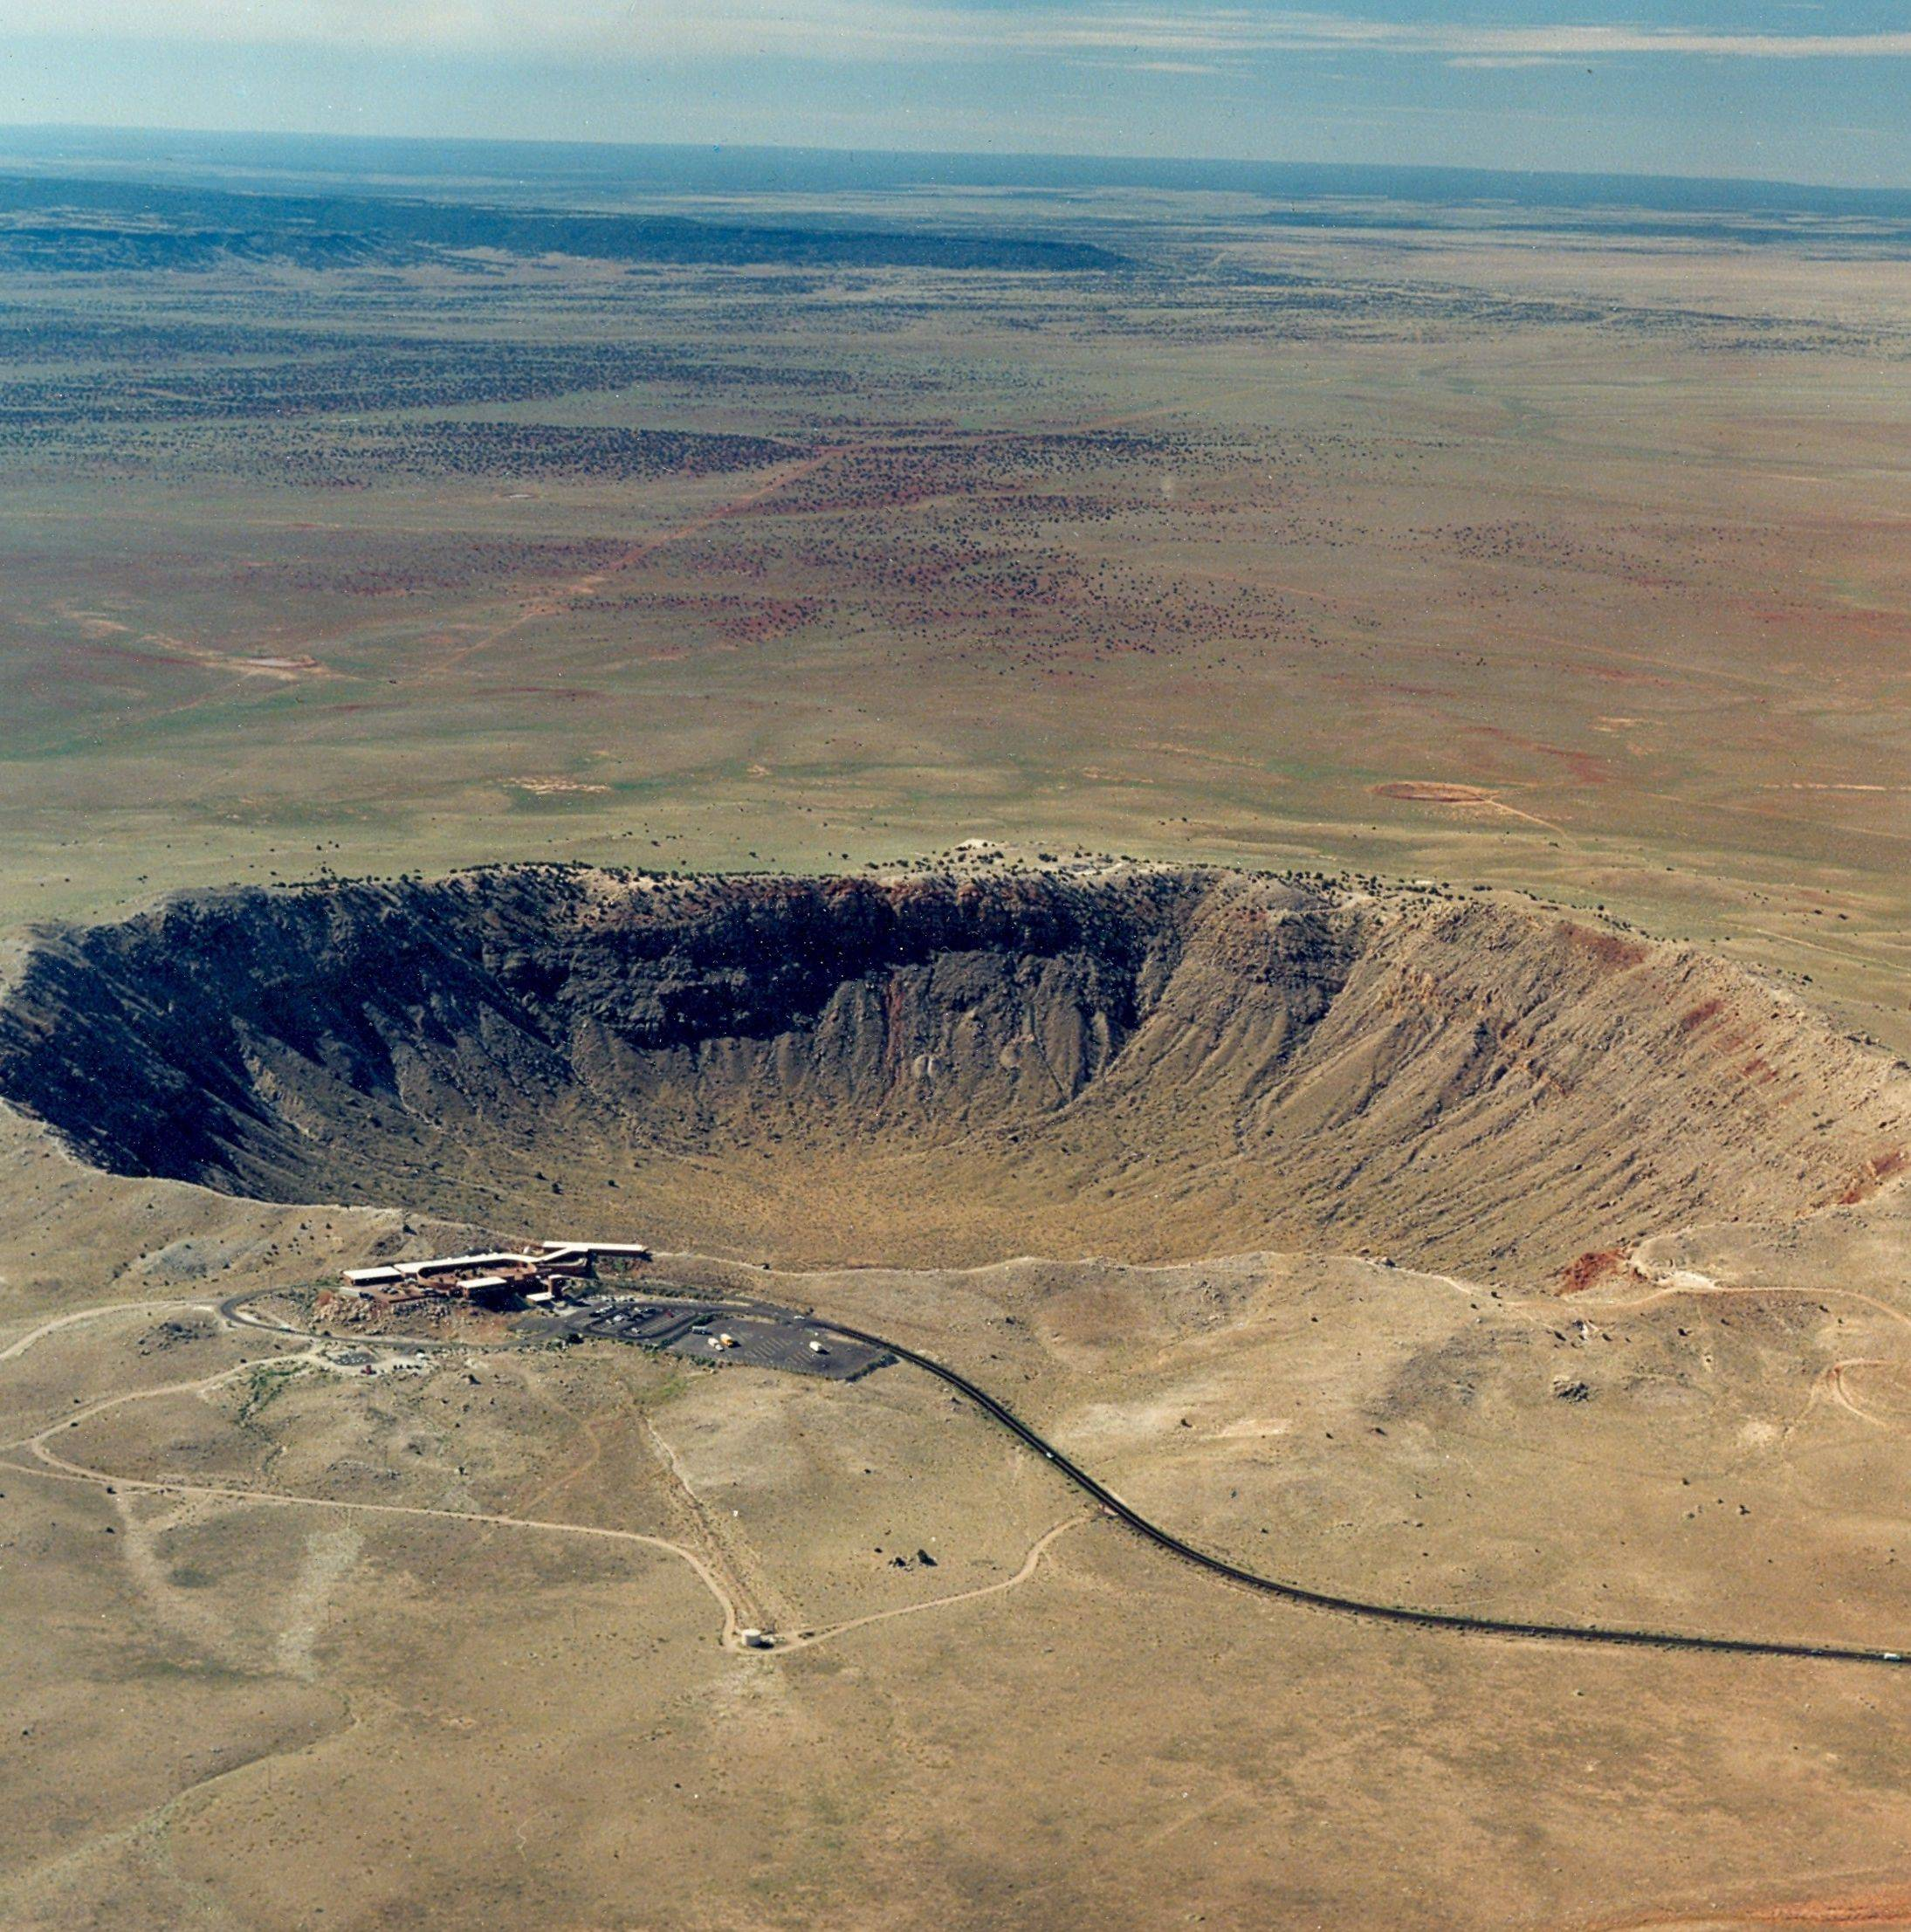 The Meteor Crater, near Winslow, Ariz., is the world's best-preserved meteor impact site. It's nearly a mile wide and over 550 feet deep.